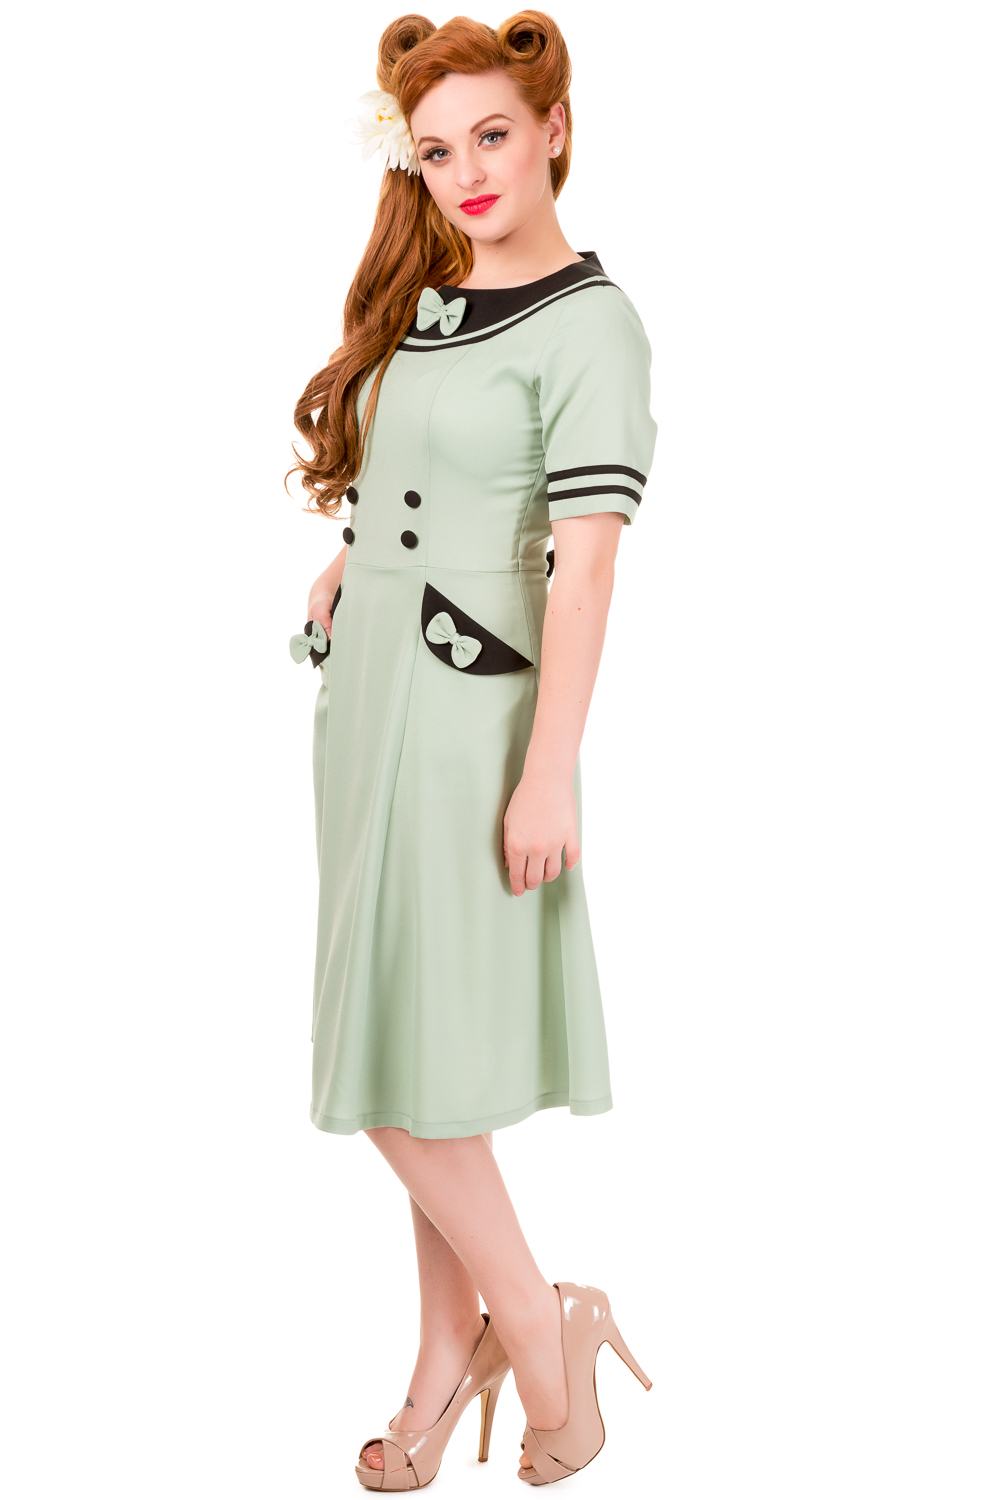 Banned Eliza Mint Green Vintage Rockabilly Dress